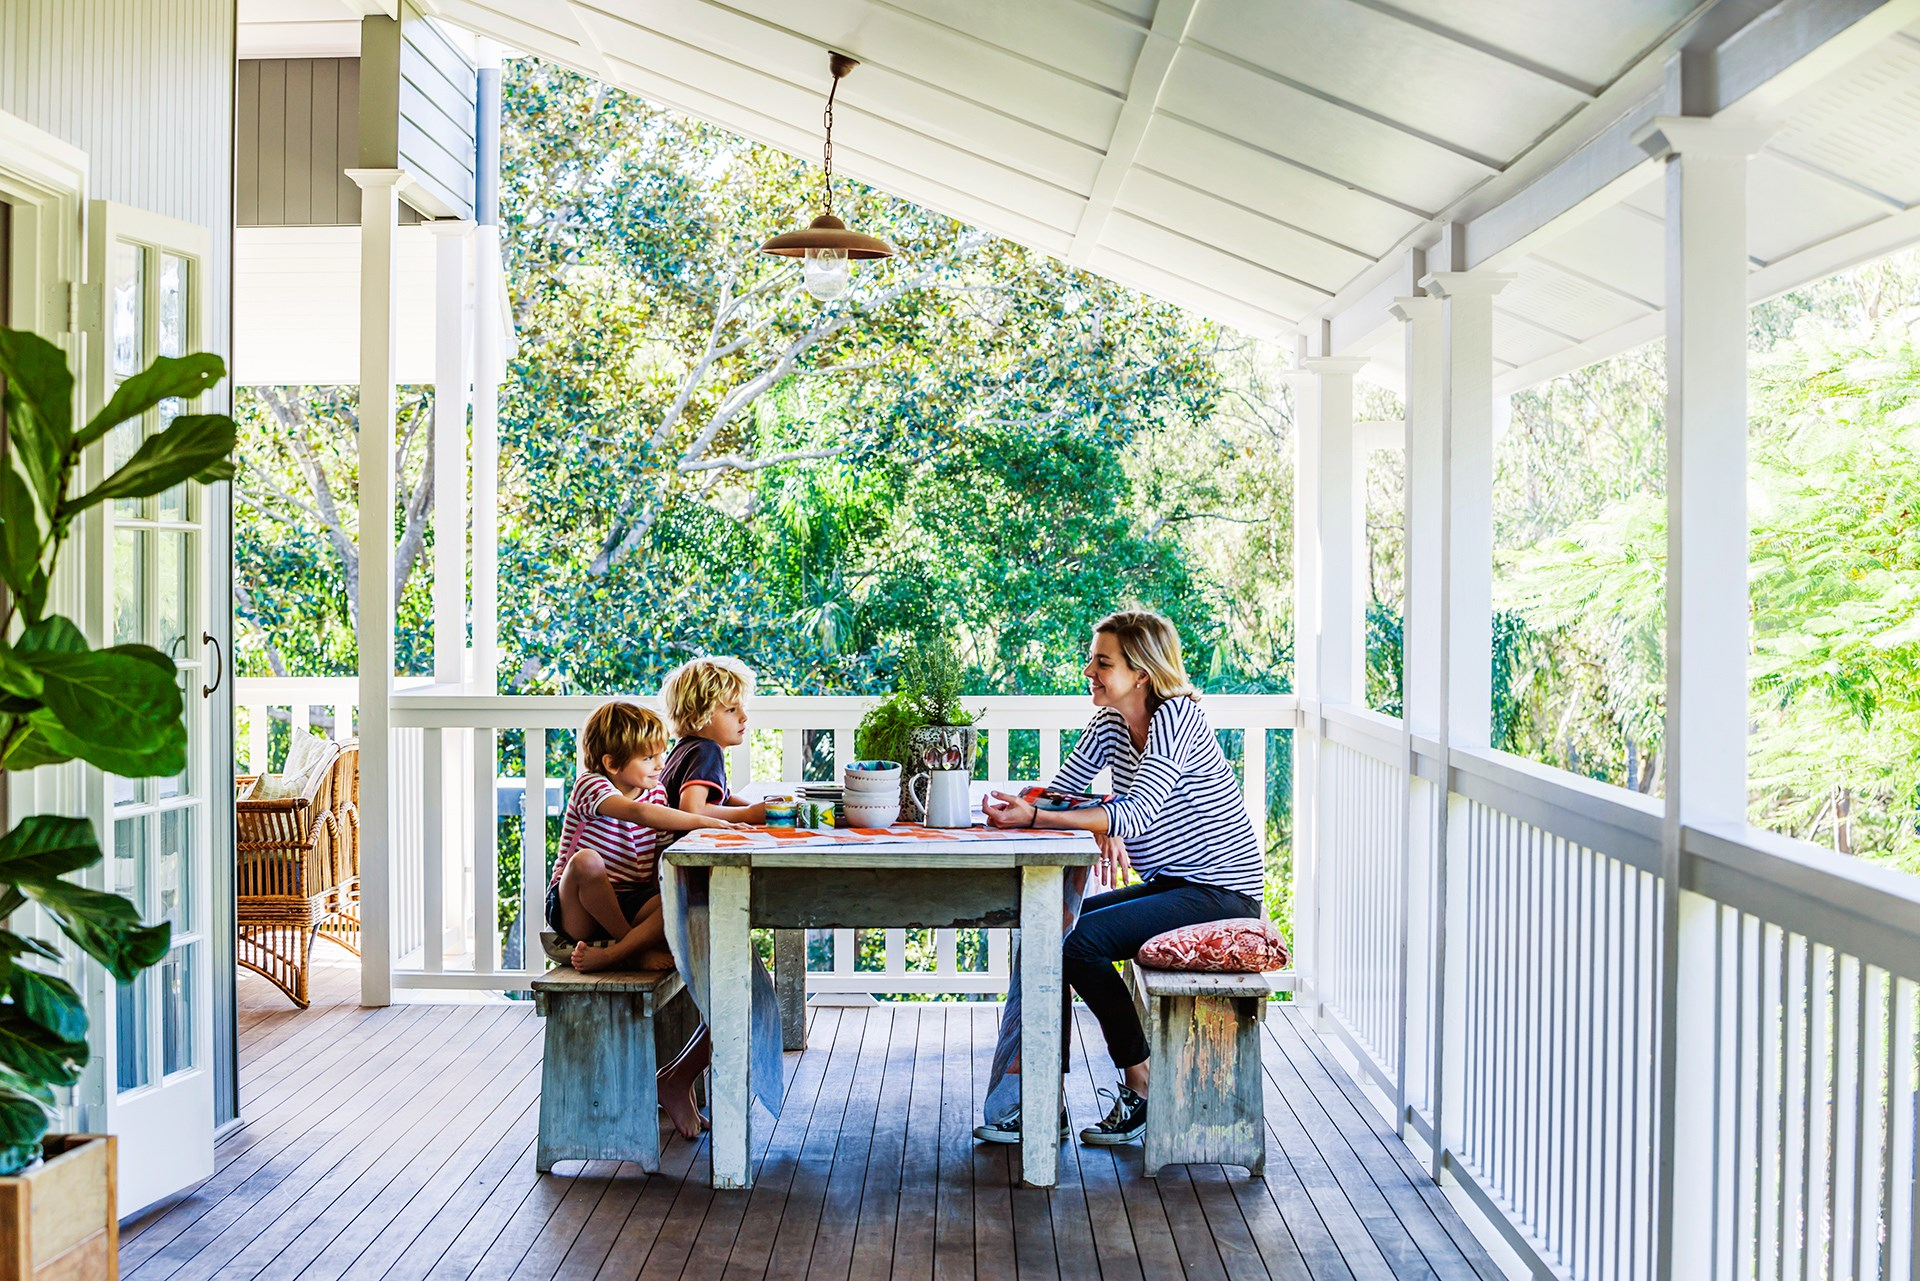 The generous veranda of a [renovated 1920s Queenslander](http://www.homestolove.com.au/layers-are-the-key-to-this-revamped-1920s-queenslander-3609) that celebrates pattern, texture and reclaimed style. Photo: Maree Homer